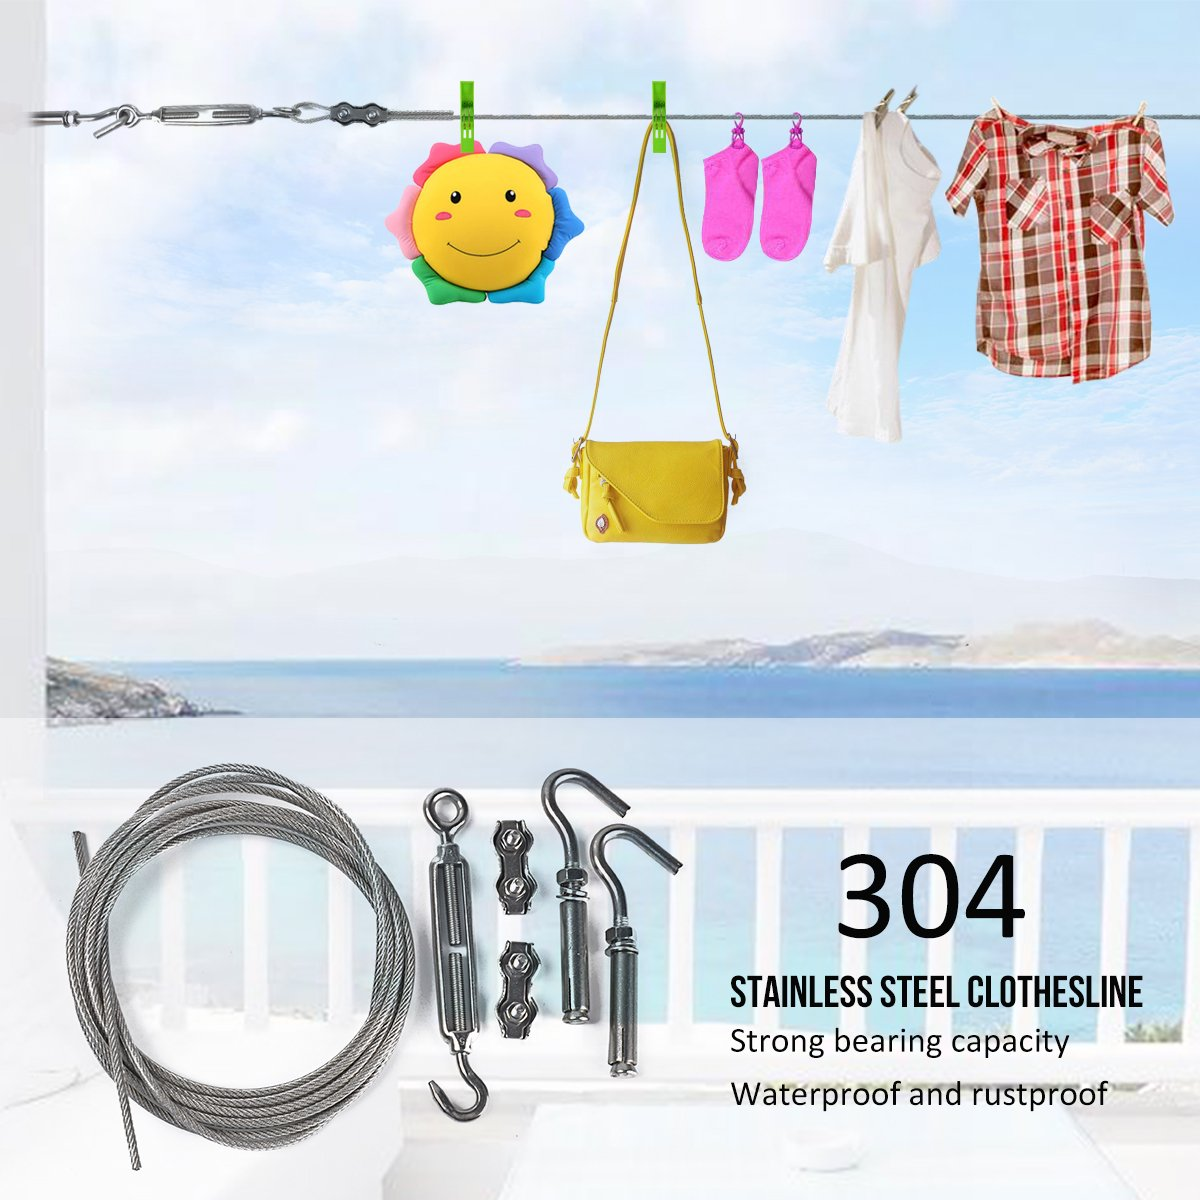 DEWEL Clotheslines 20ft/ 6m Portable Windproof Clothes Rope Line with Stainless Steel Cable Retractable System Heavy Duty Laundry Rope for Outdoor/ Indoor/ Home /Travel/ Drying (20Ft)